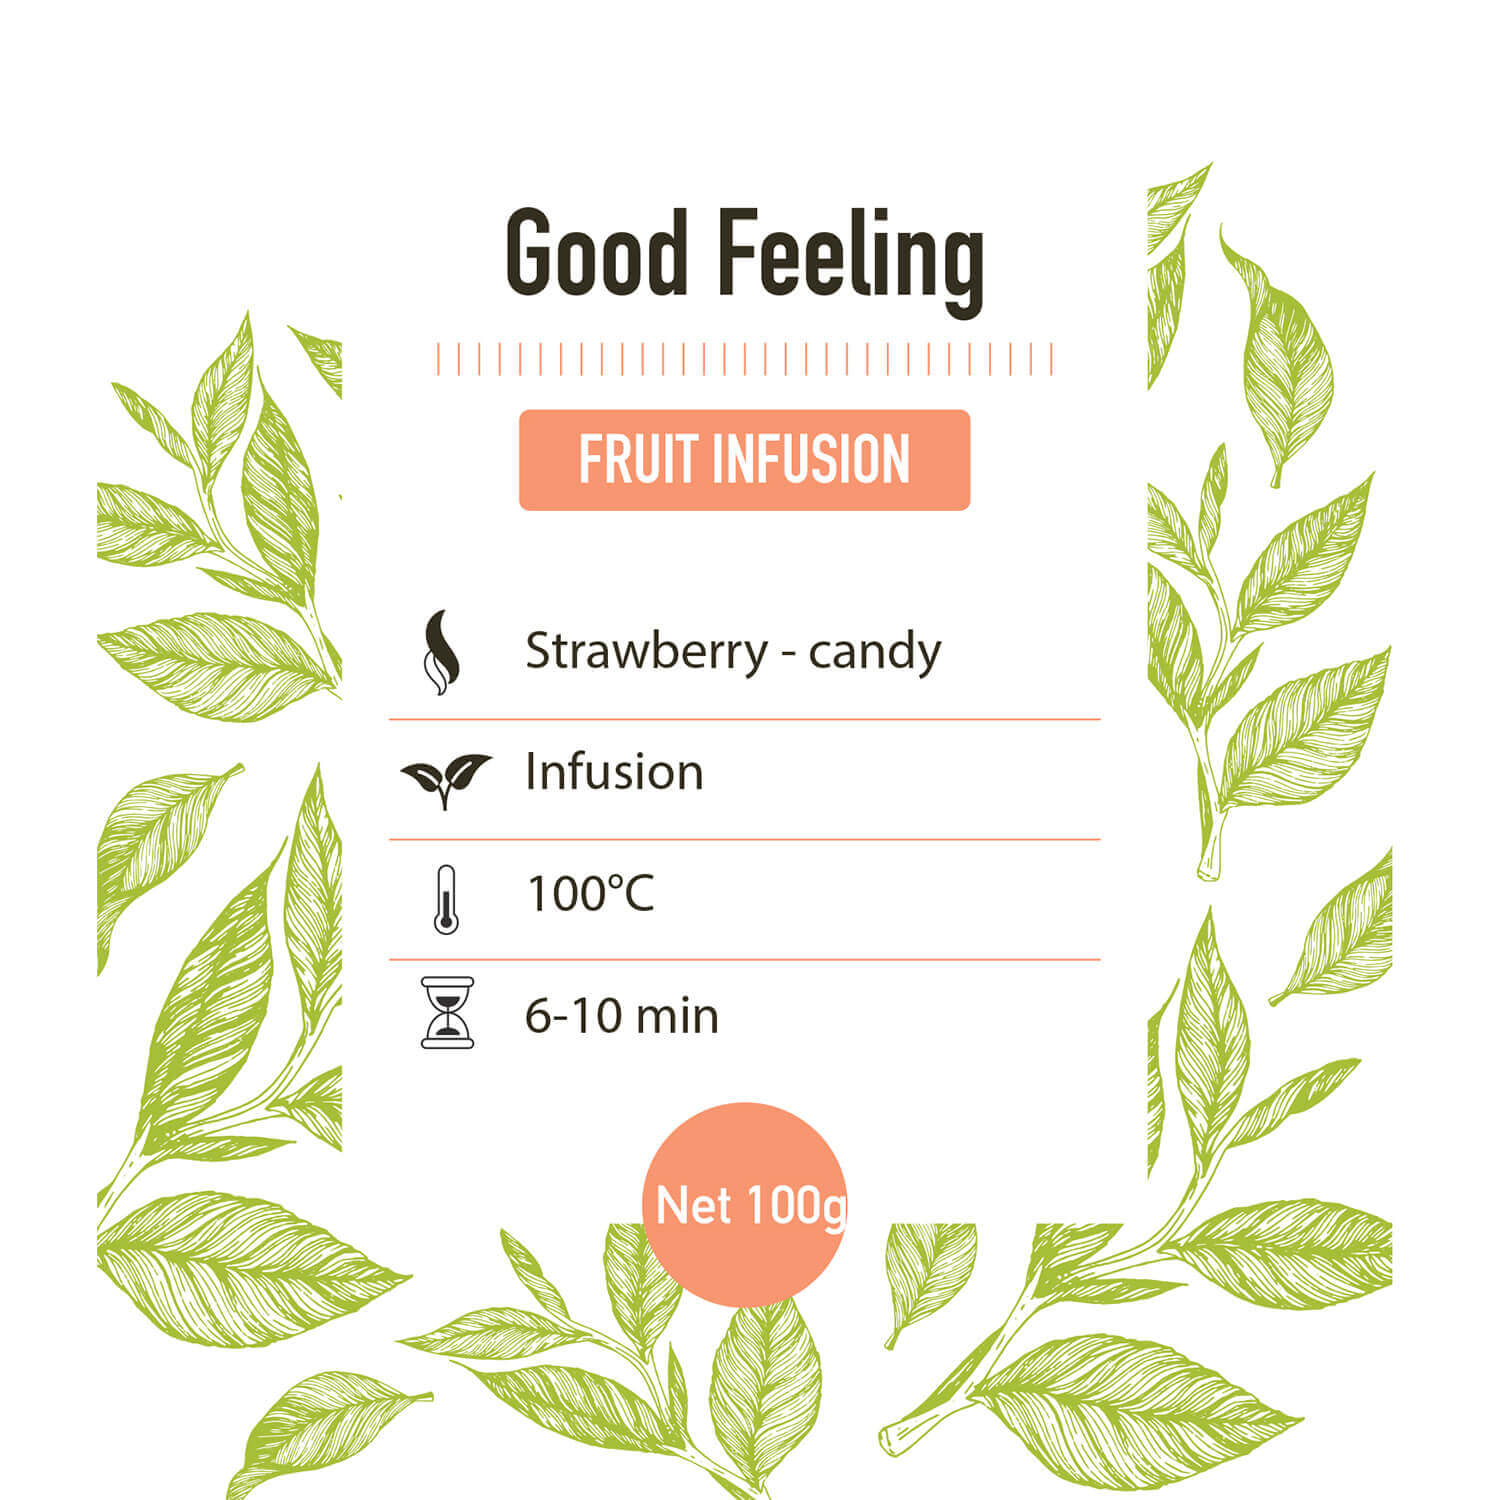 Fruit infusie – Good feeling - detail